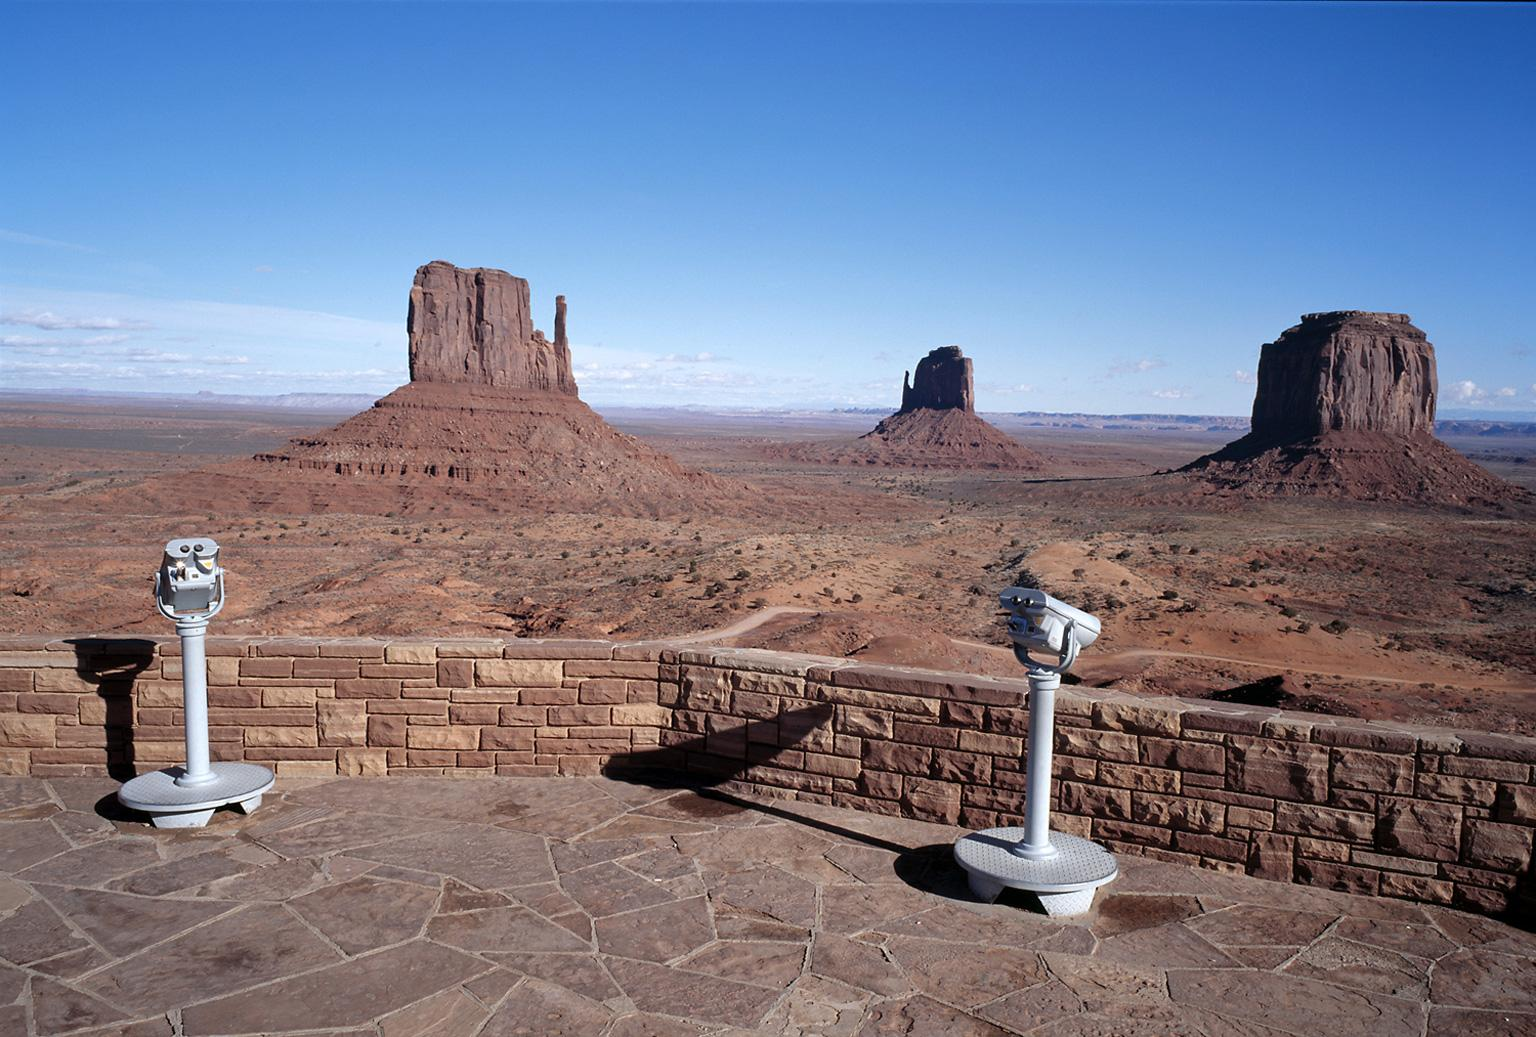 Wild West II - large scale photograph of iconic Navajo American West landscape